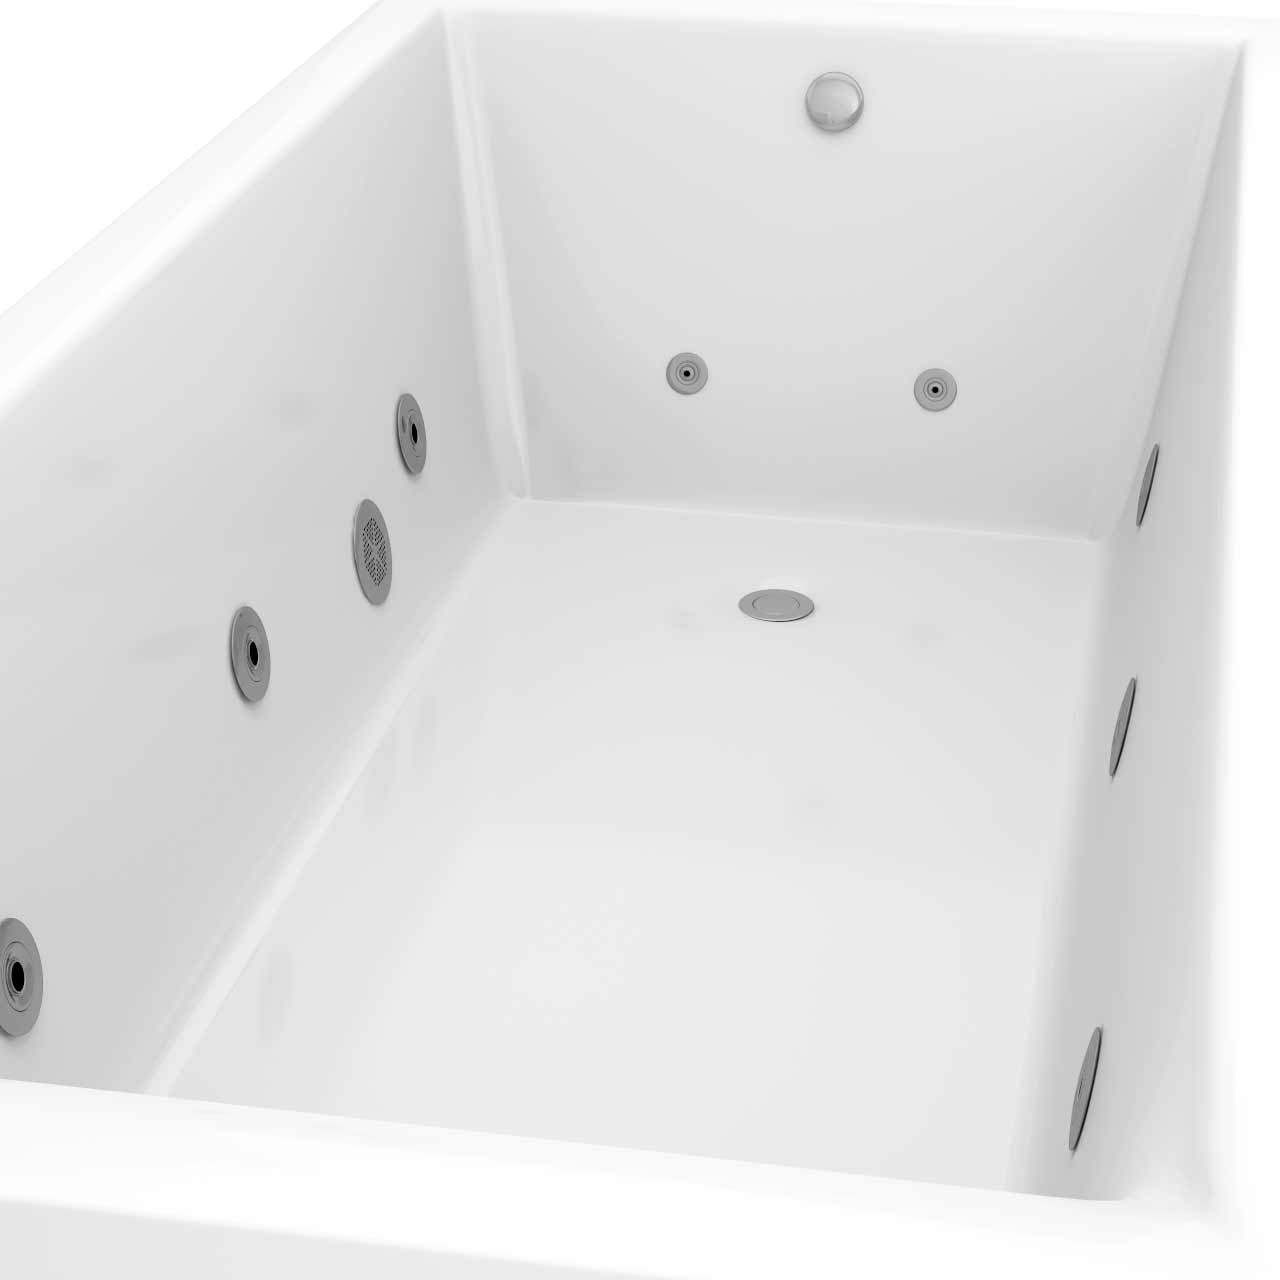 Summit End Tap 12 Jet Chrome Flat Jet Whirlpool Bath 1700x750